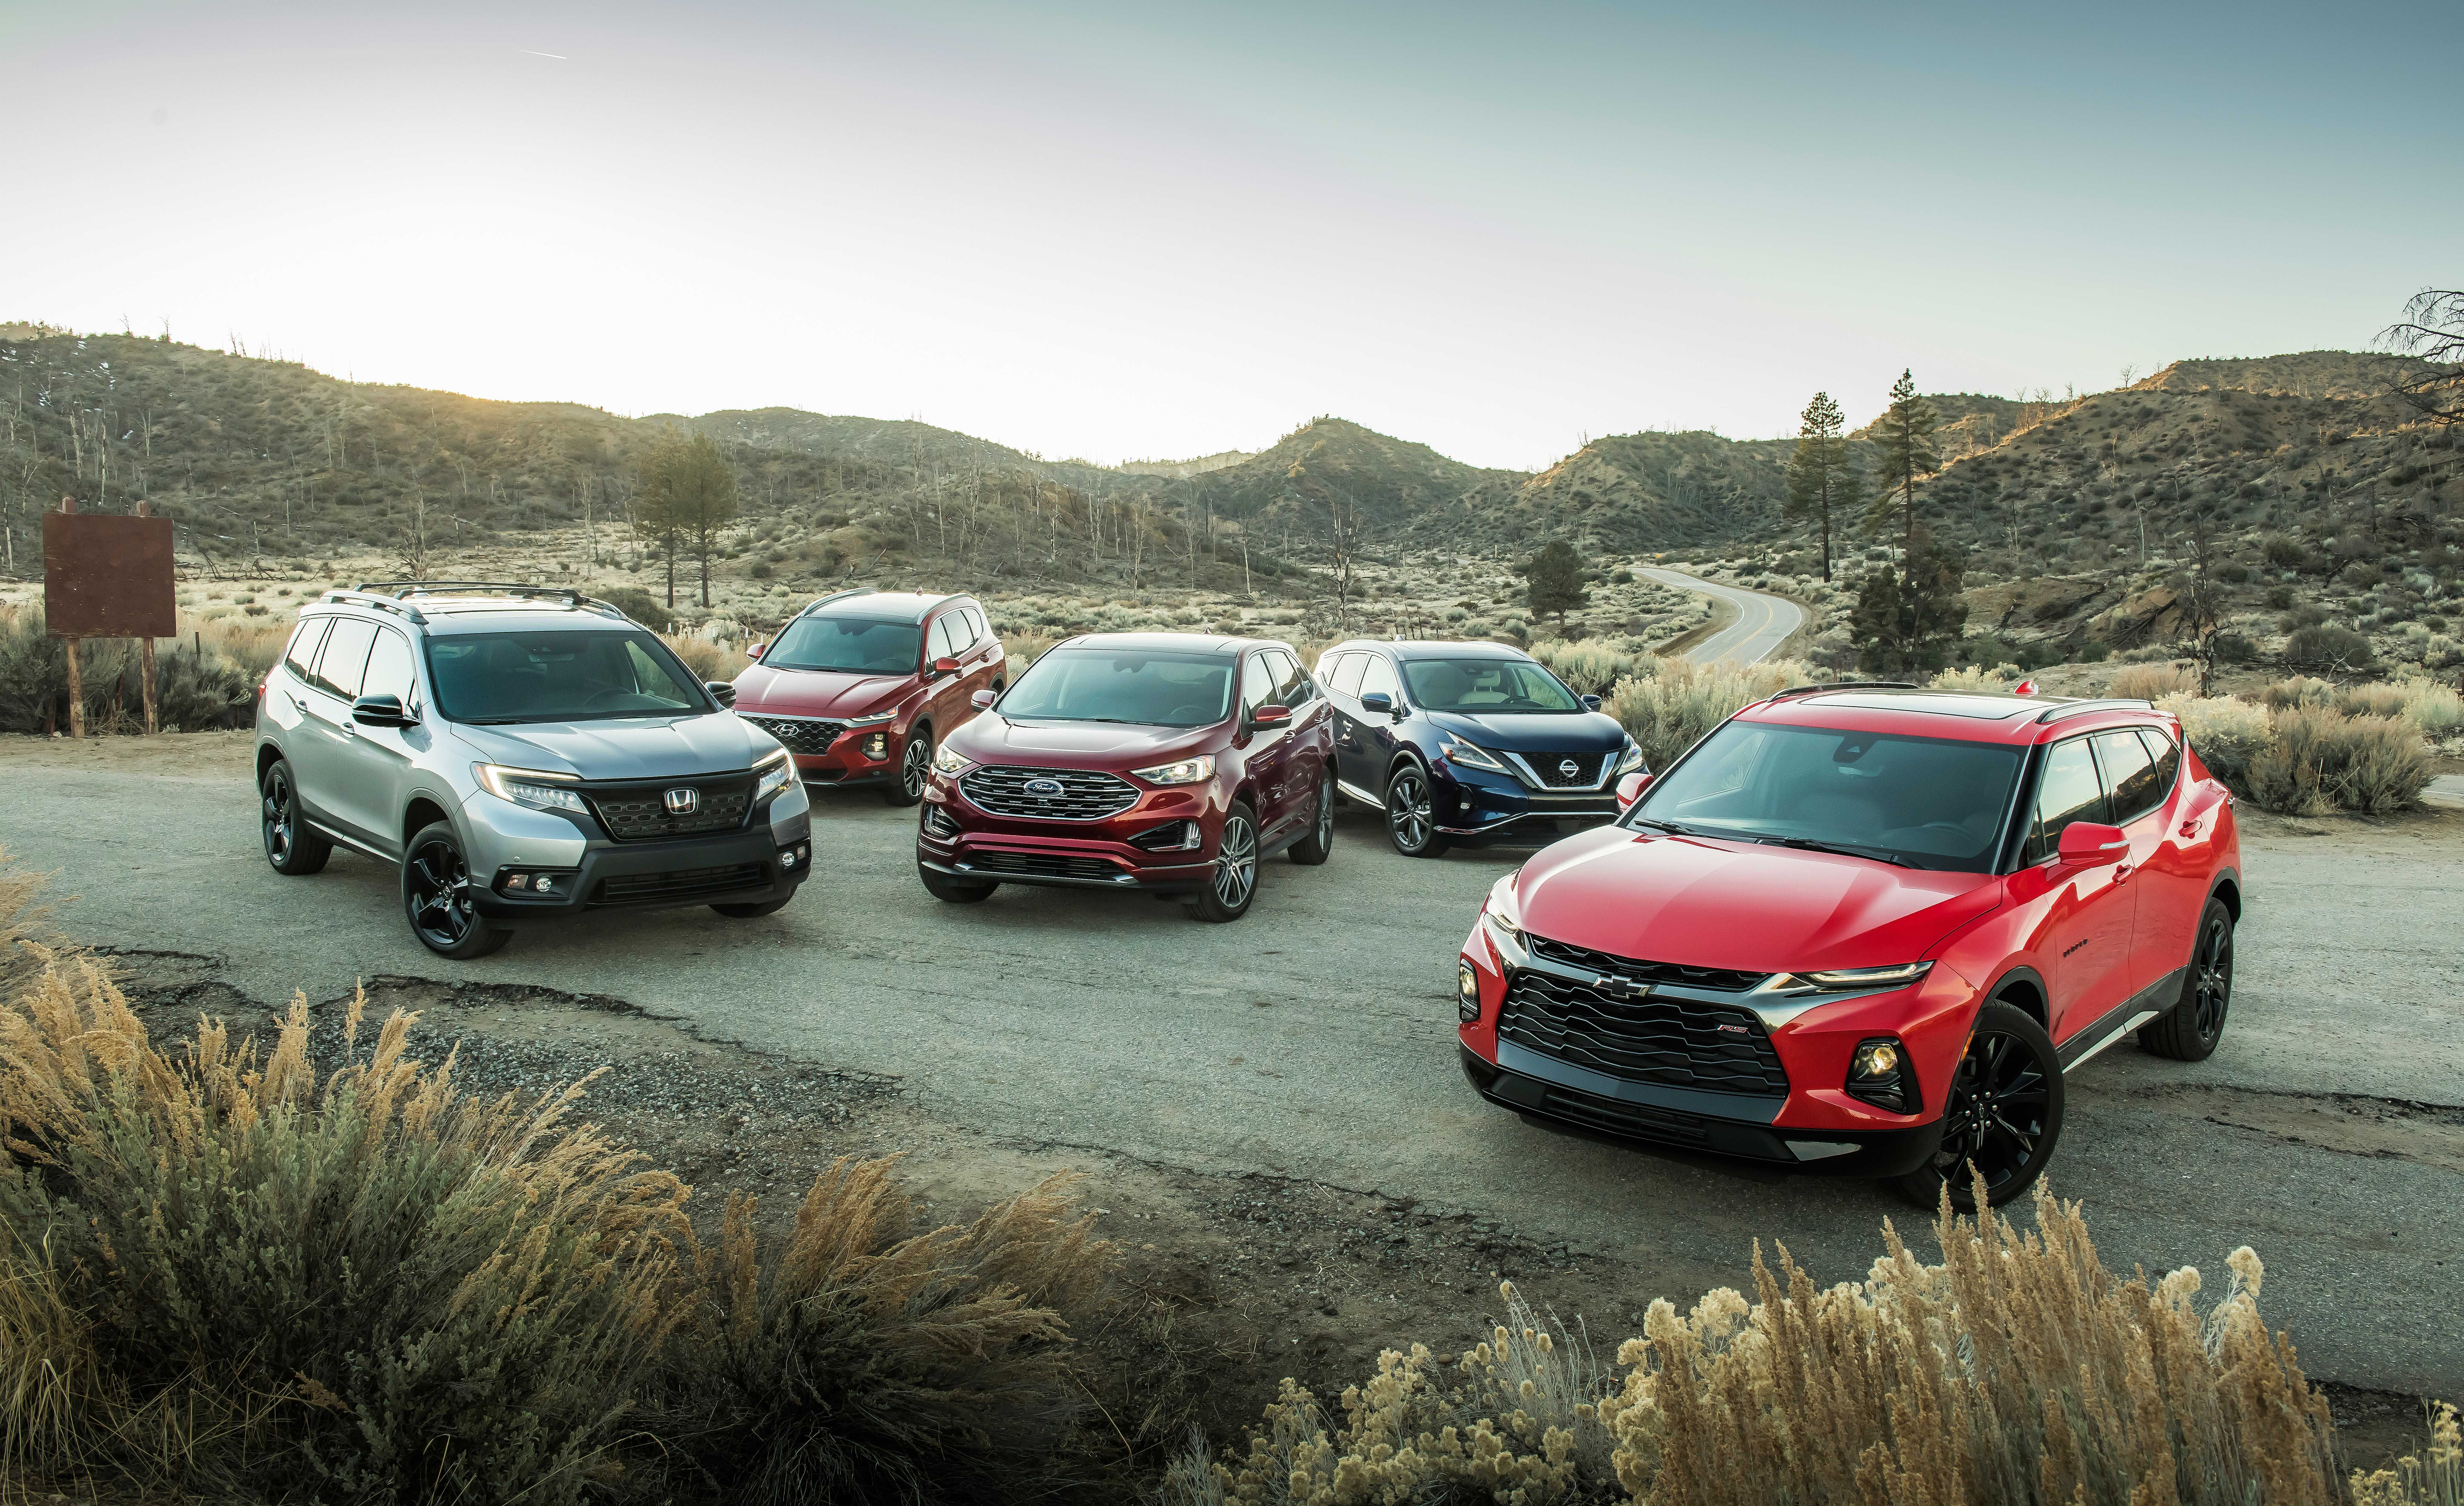 2019 Ford Edge Vs Hyundai Santa Fe Vs Nissan Murano Vs Honda Passport